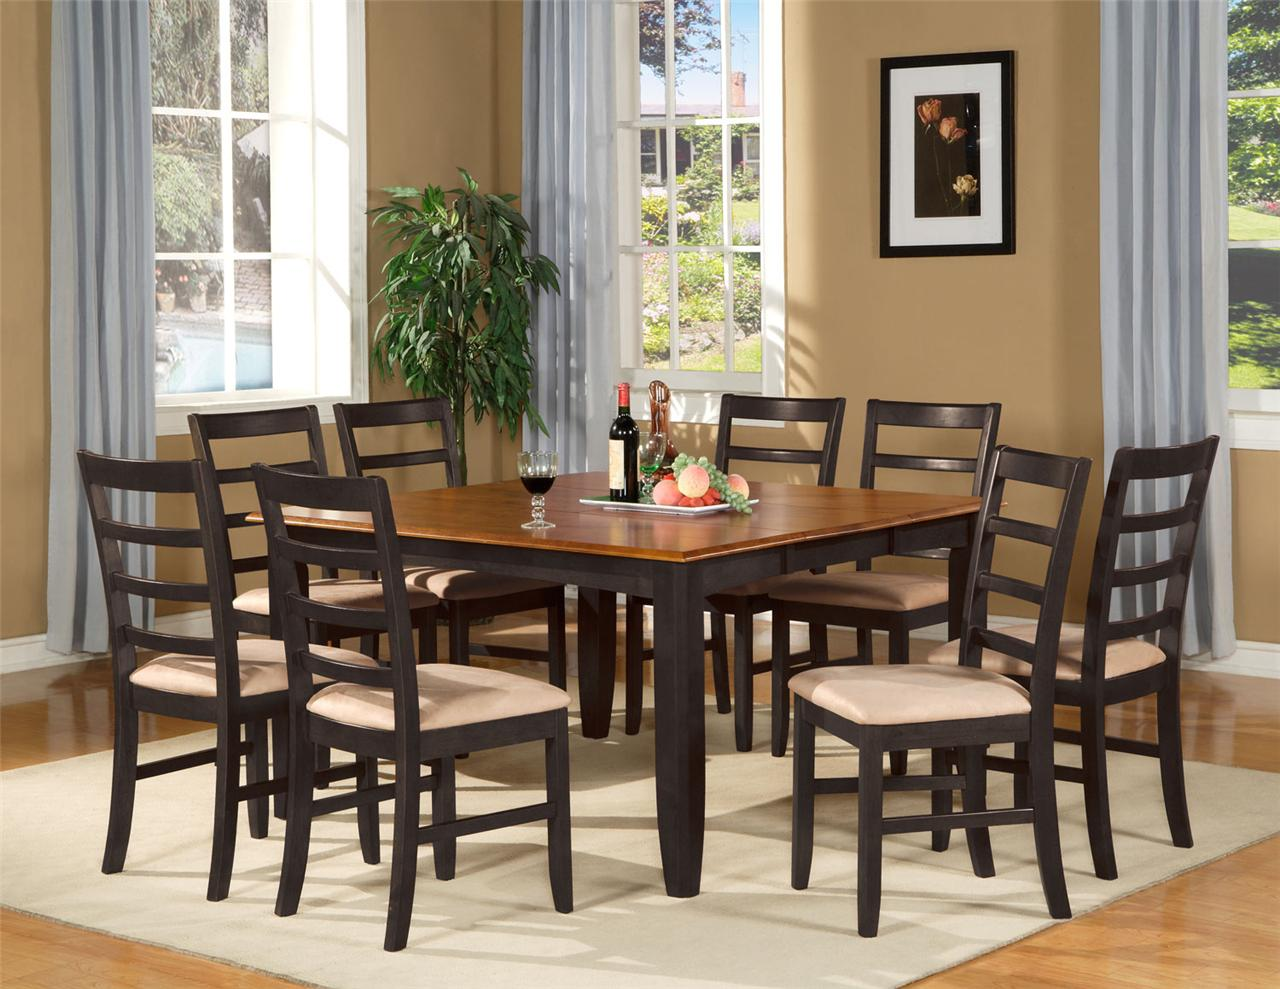 dining tables for 8 photo - 2